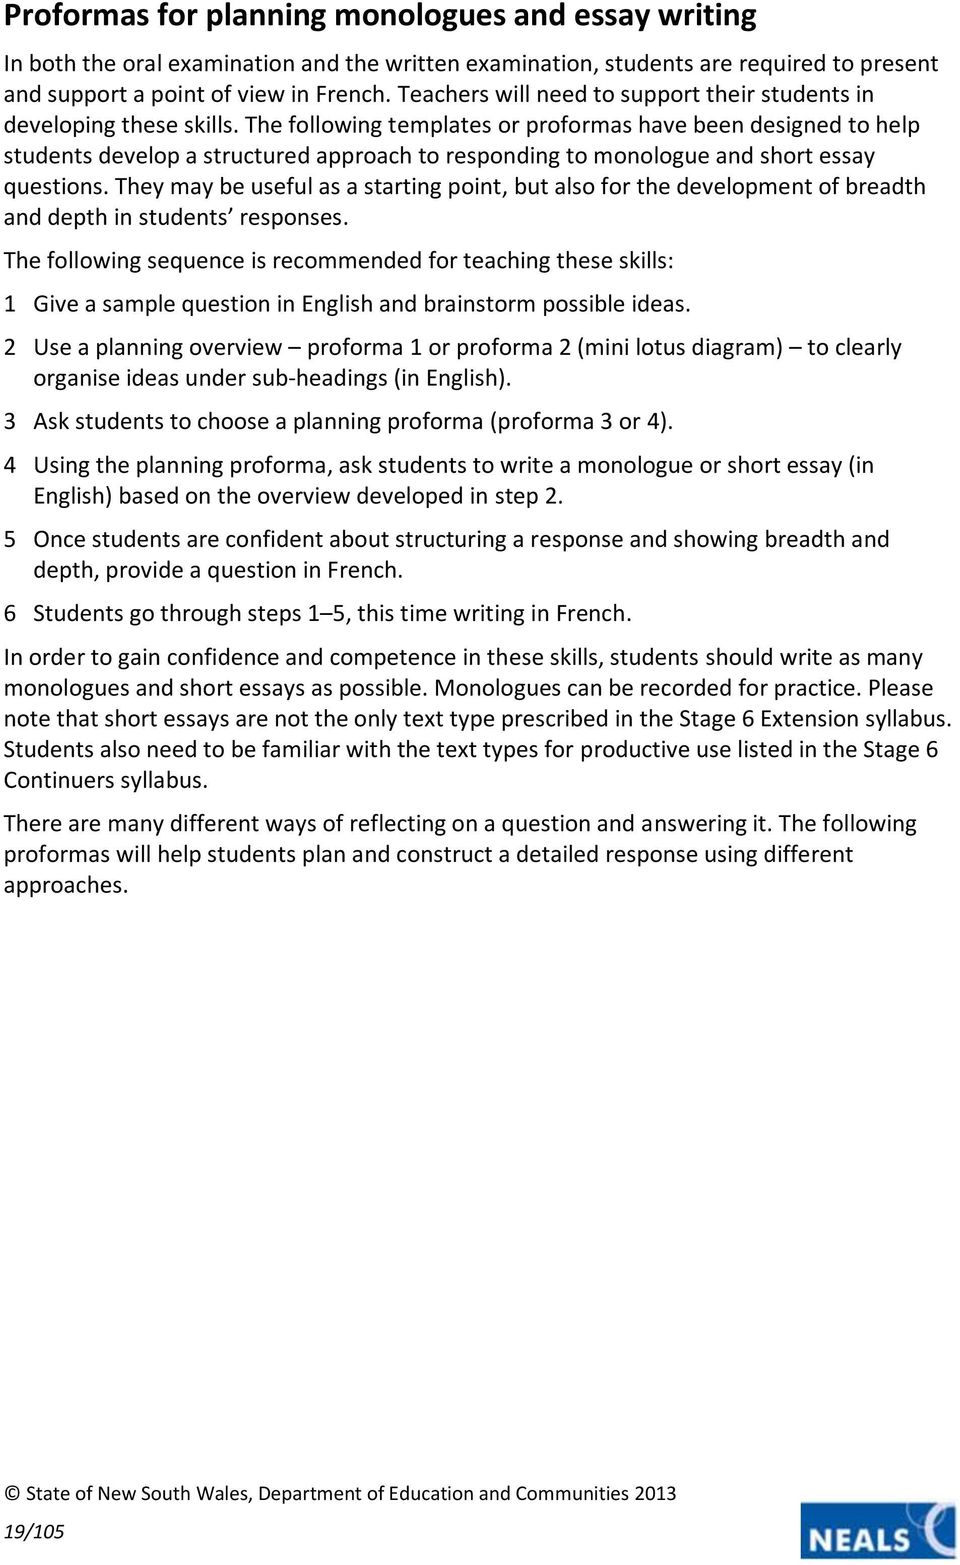 French essay french extension contents support materials hsc stage 6 french extension contents support materials hsc stage 6 the following templates or proformas have been designed spiritdancerdesigns Choice Image